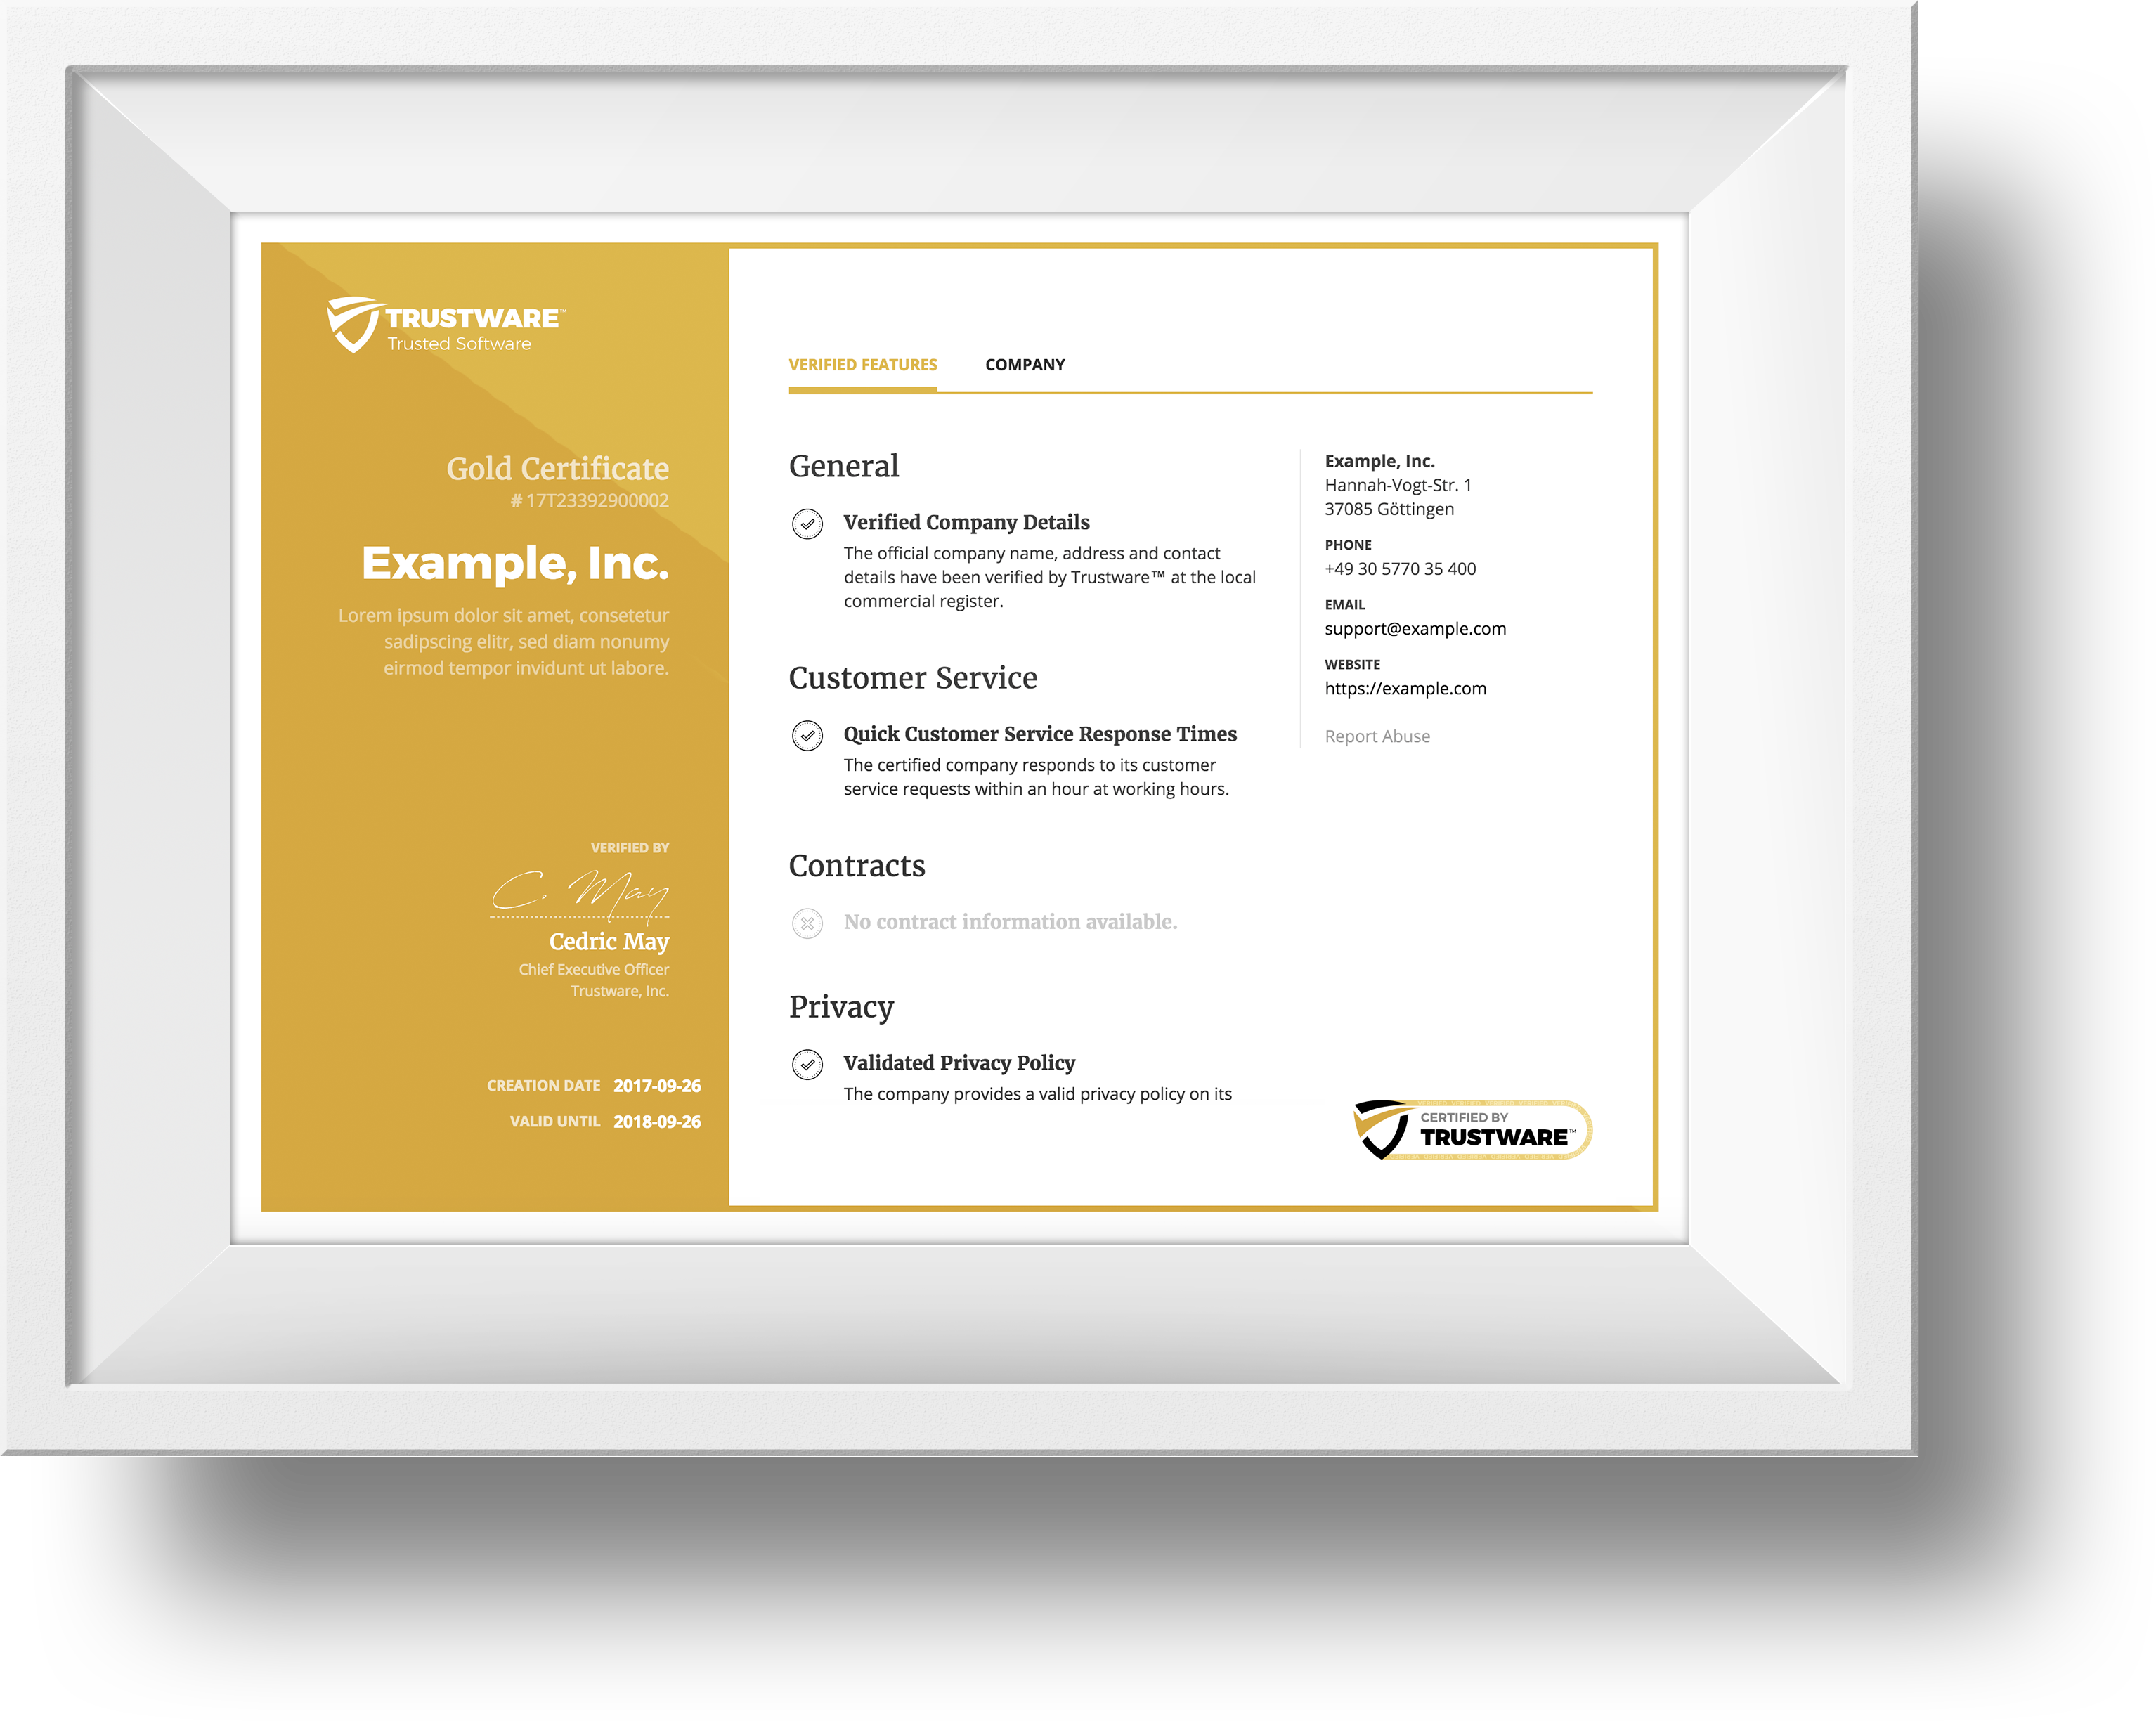 Trustware Software Certificate